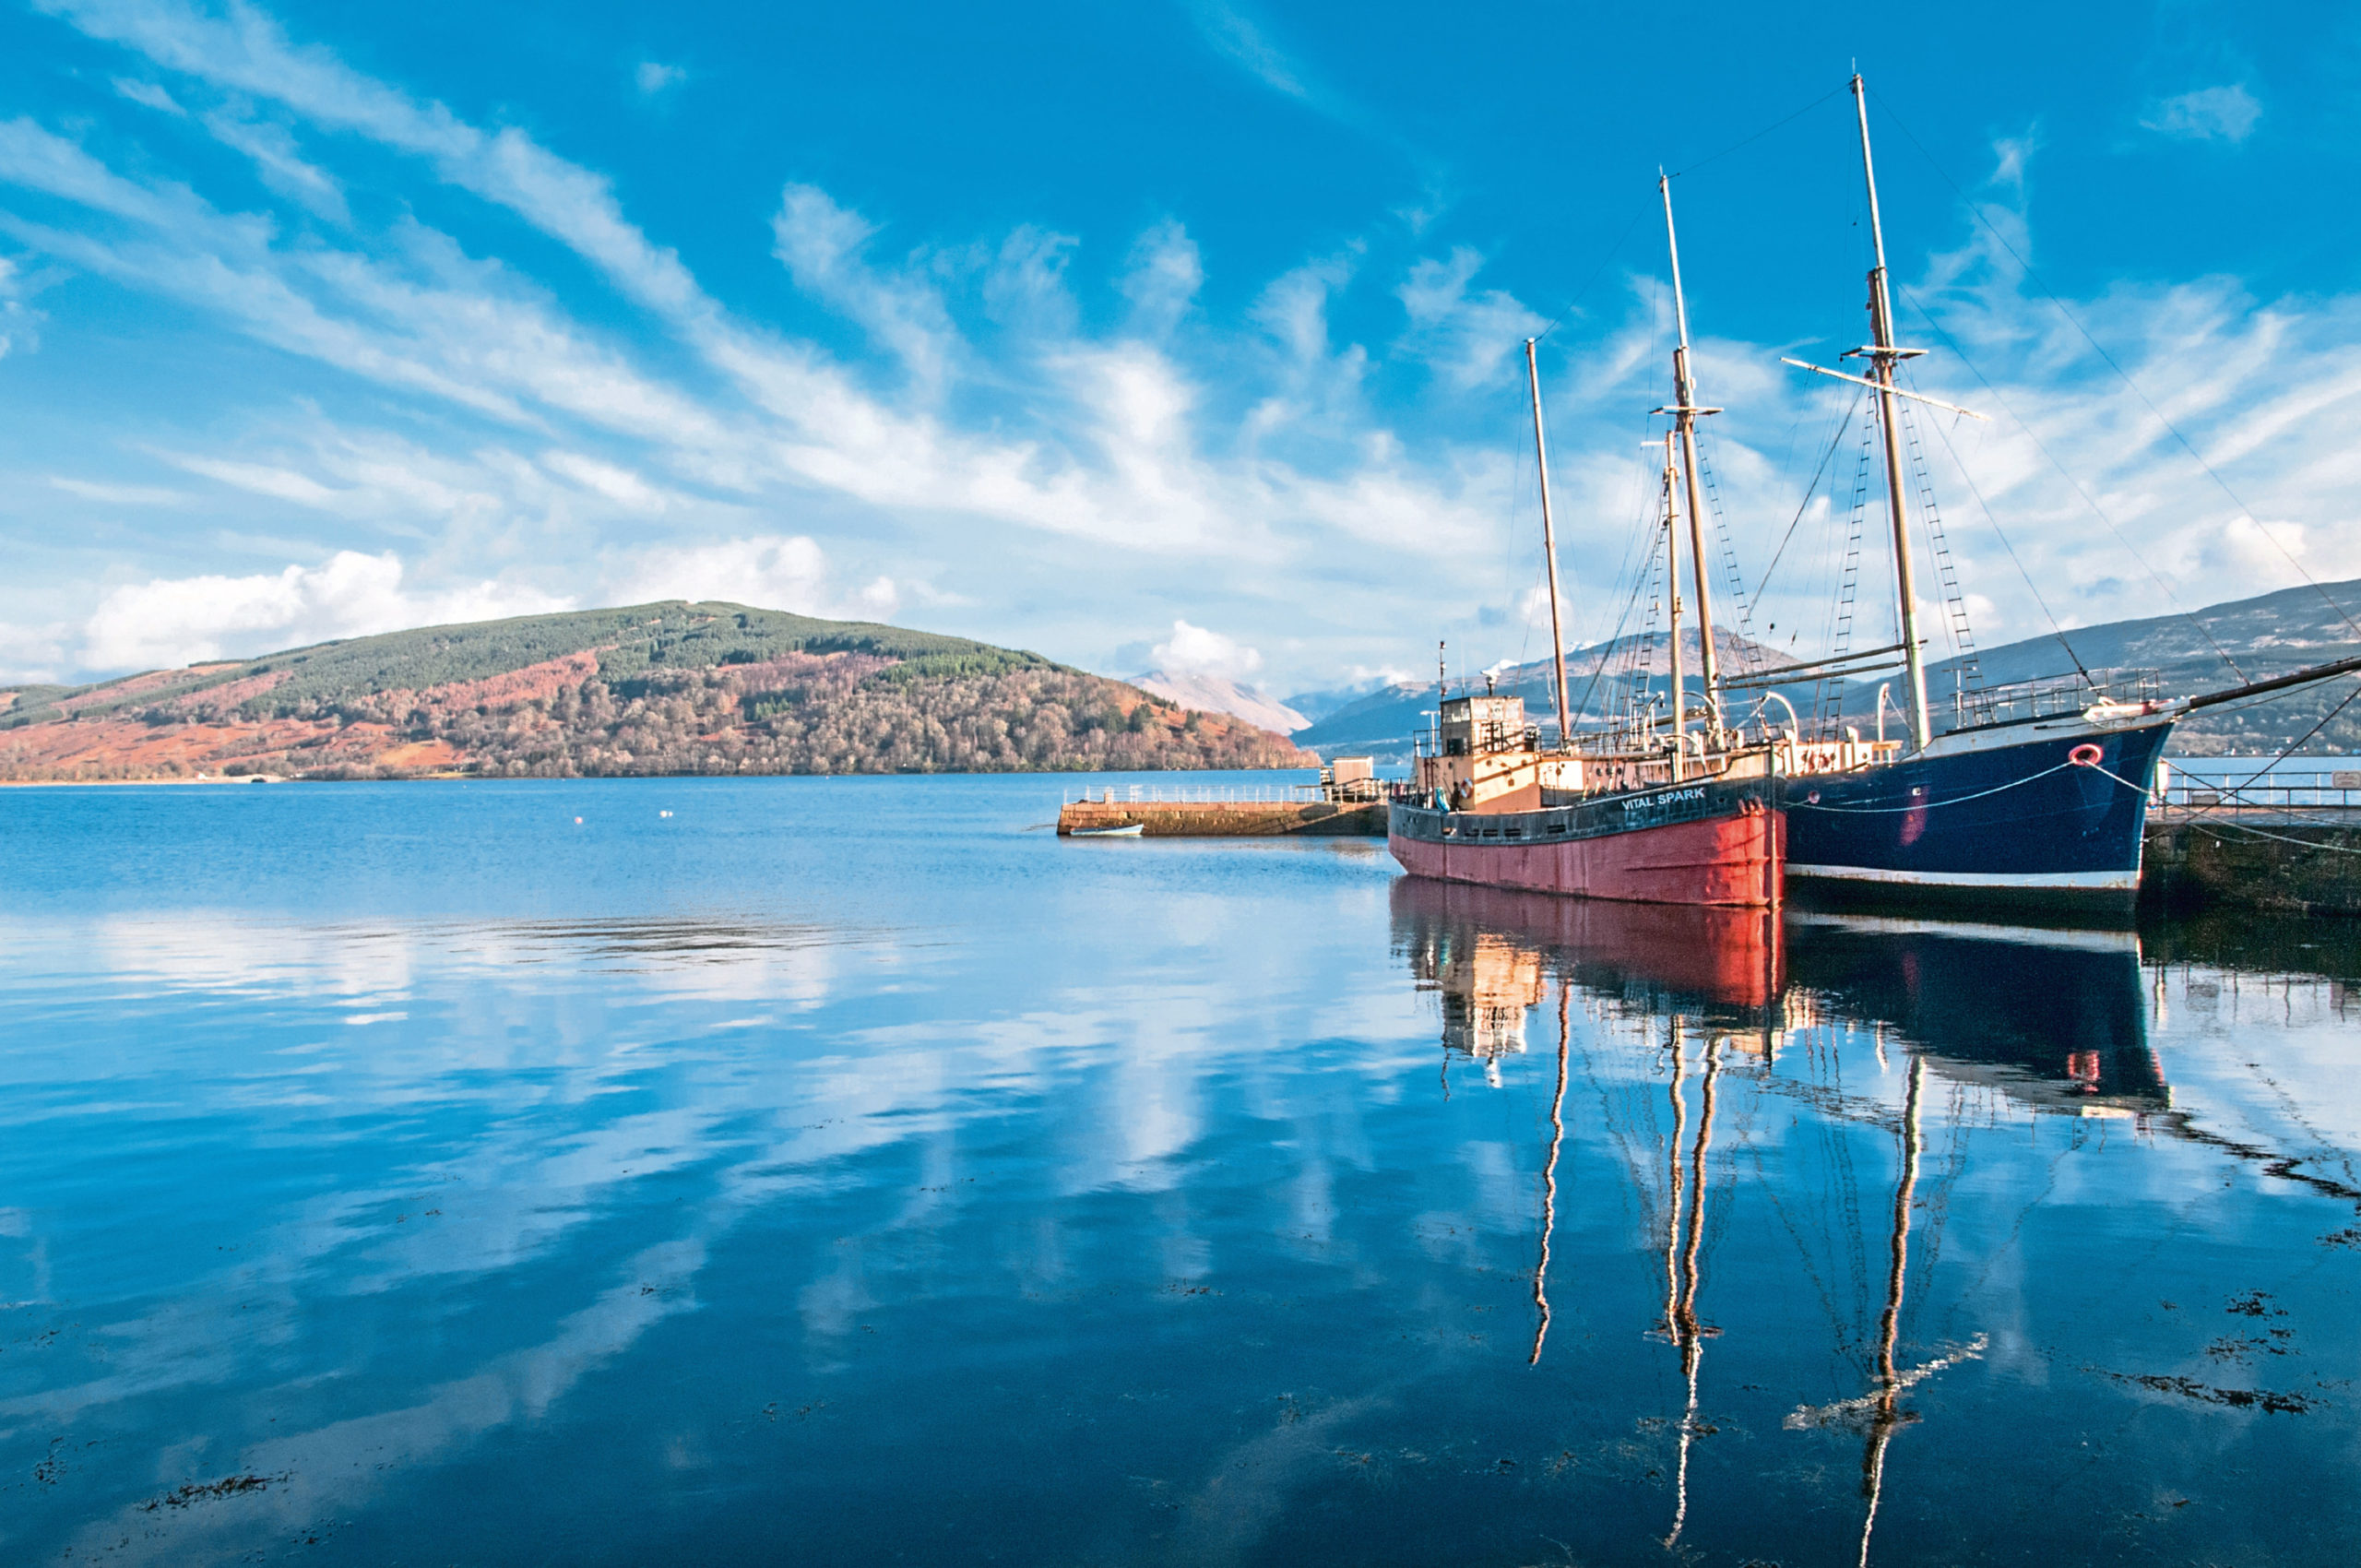 Loch Fyne in Argyll is known for producing excellent oysters